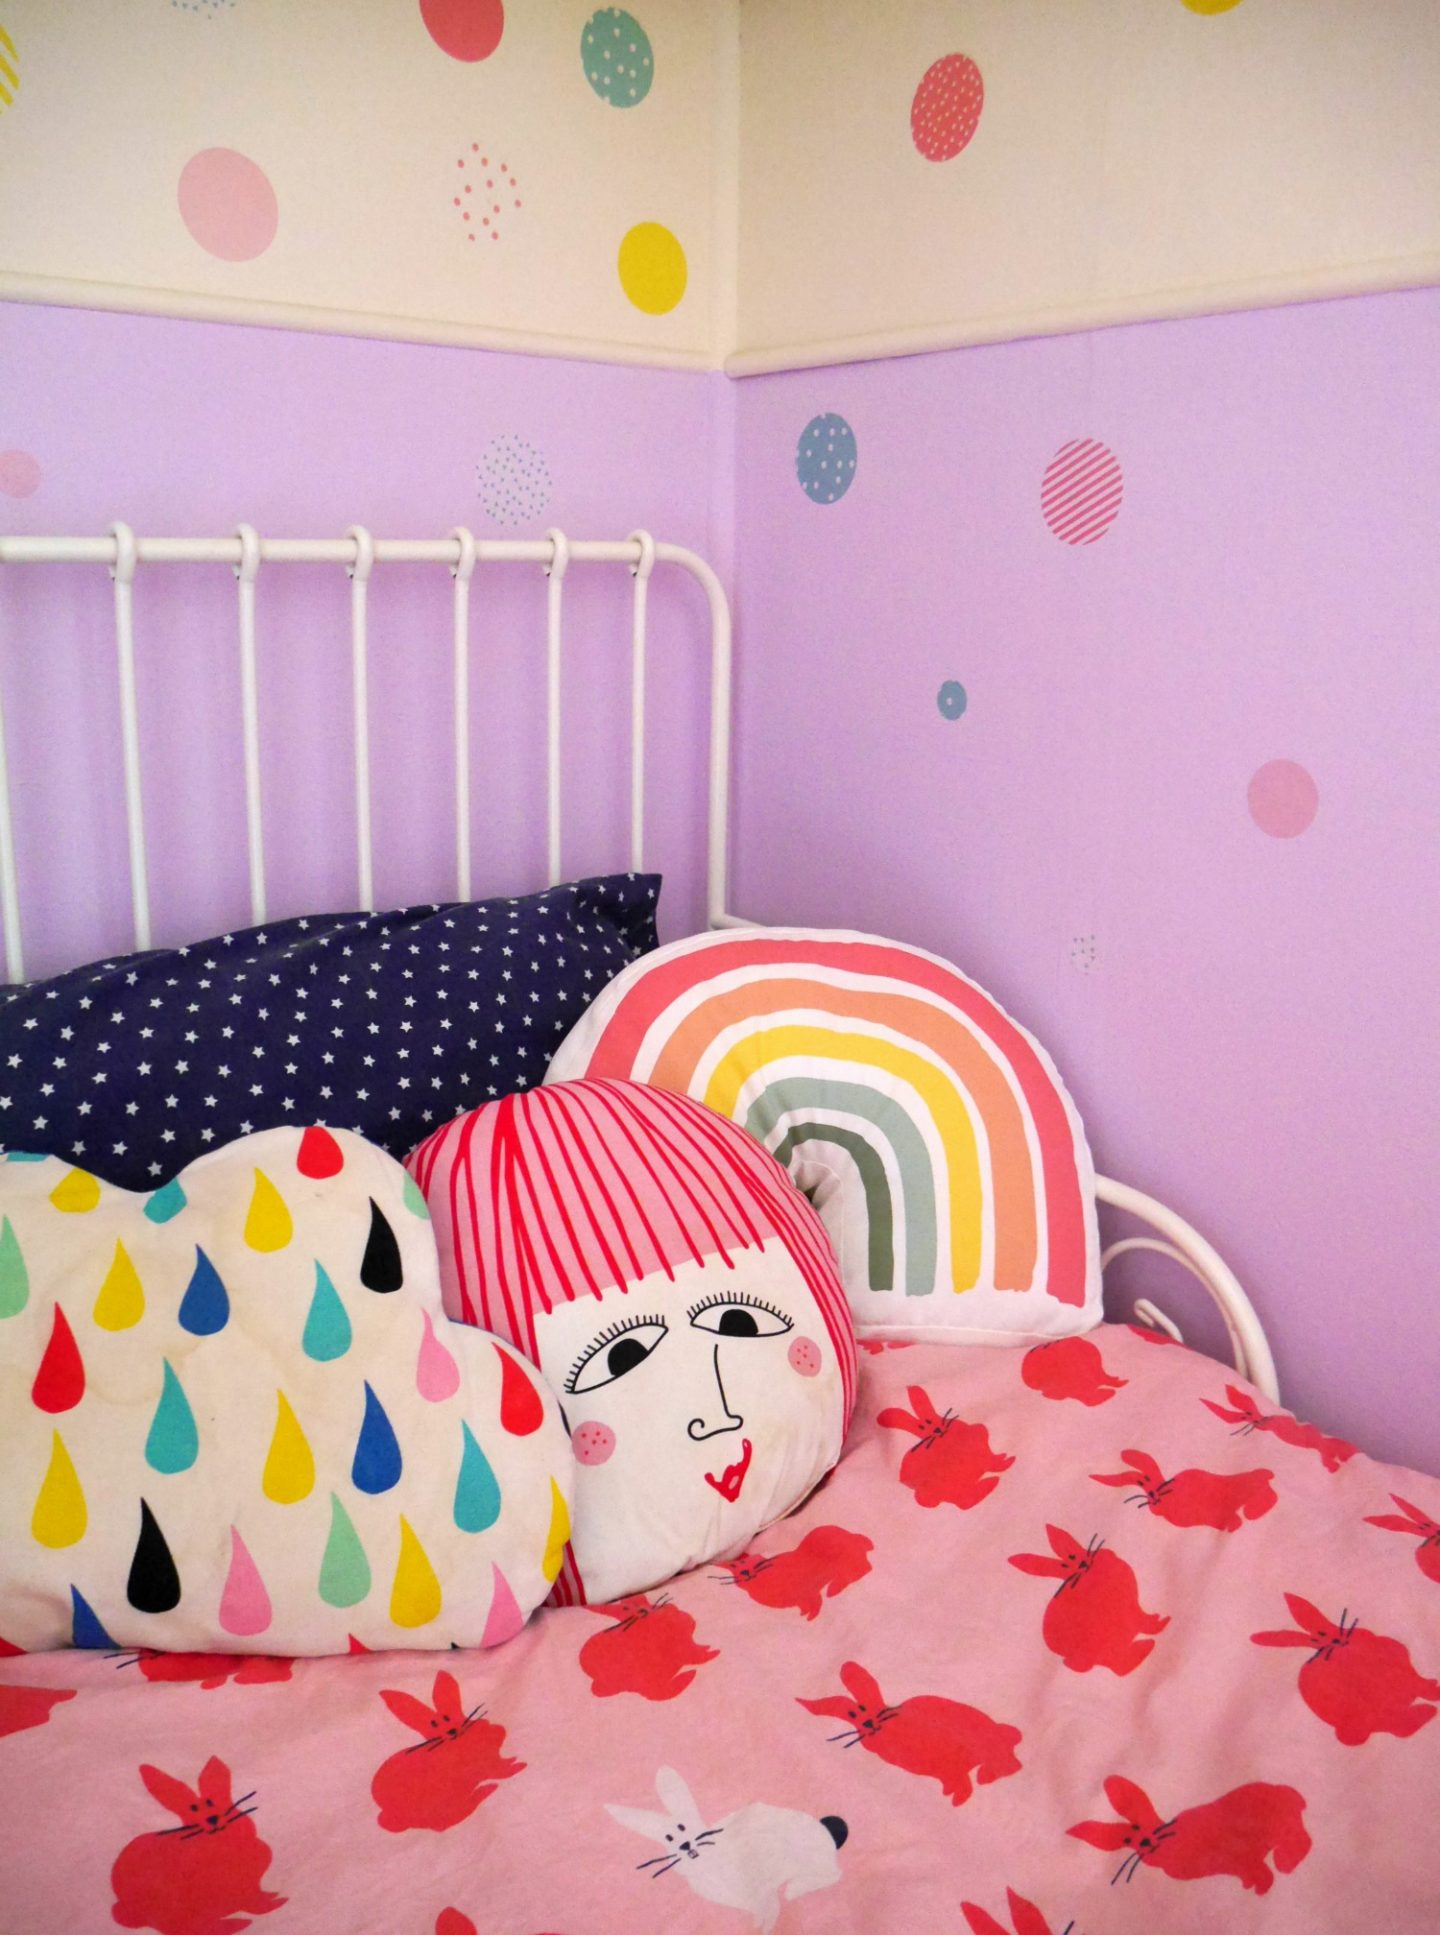 Lavender wall - painting sections of a wall in colourful children's bedrooms